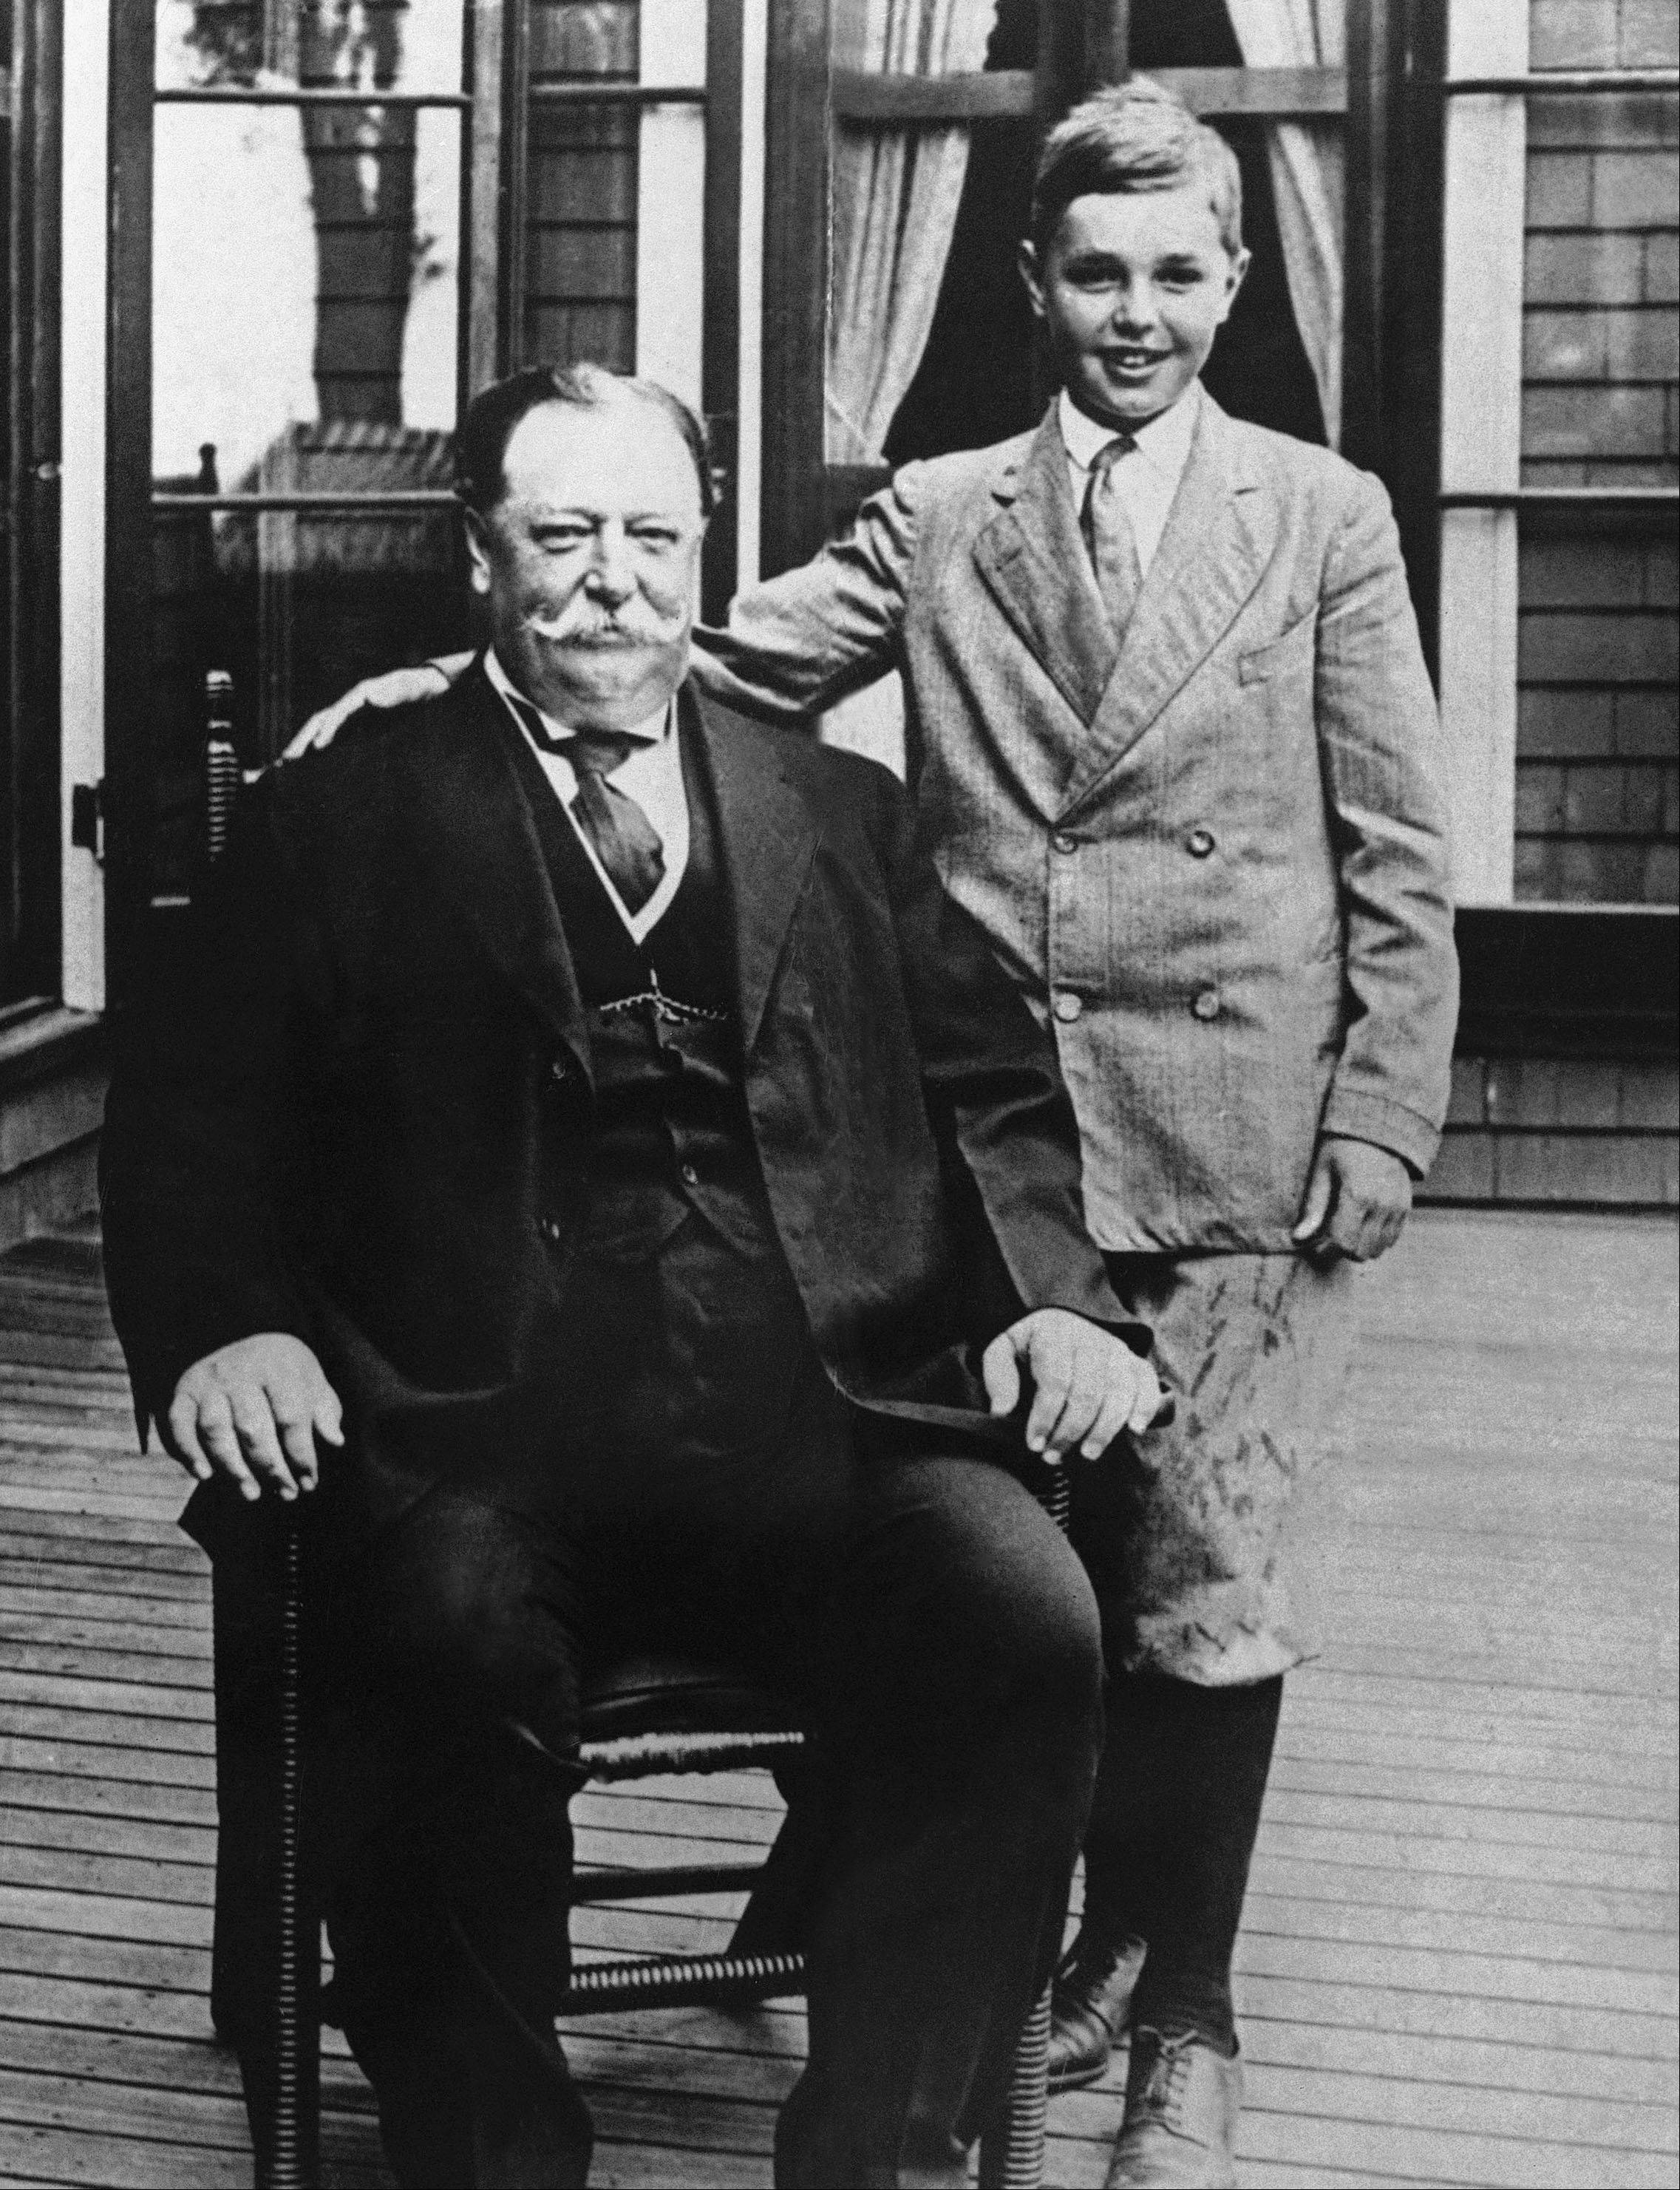 This photo shows President William Howard Taft with his son Charles while on vacation in Beverly, Mass. History buffs know Taft is the only president to later become Supreme Court chief justice, but he's also remembered as the president whose weight, at times well over 300 pounds, made headlines. Yet in the early 1900s, way before Weight Watchers, the nation's 27th president was helping to usher in a modern approach to treating obesity according to a report released Oct. 14 in the journal Annals of Internal Medicine.